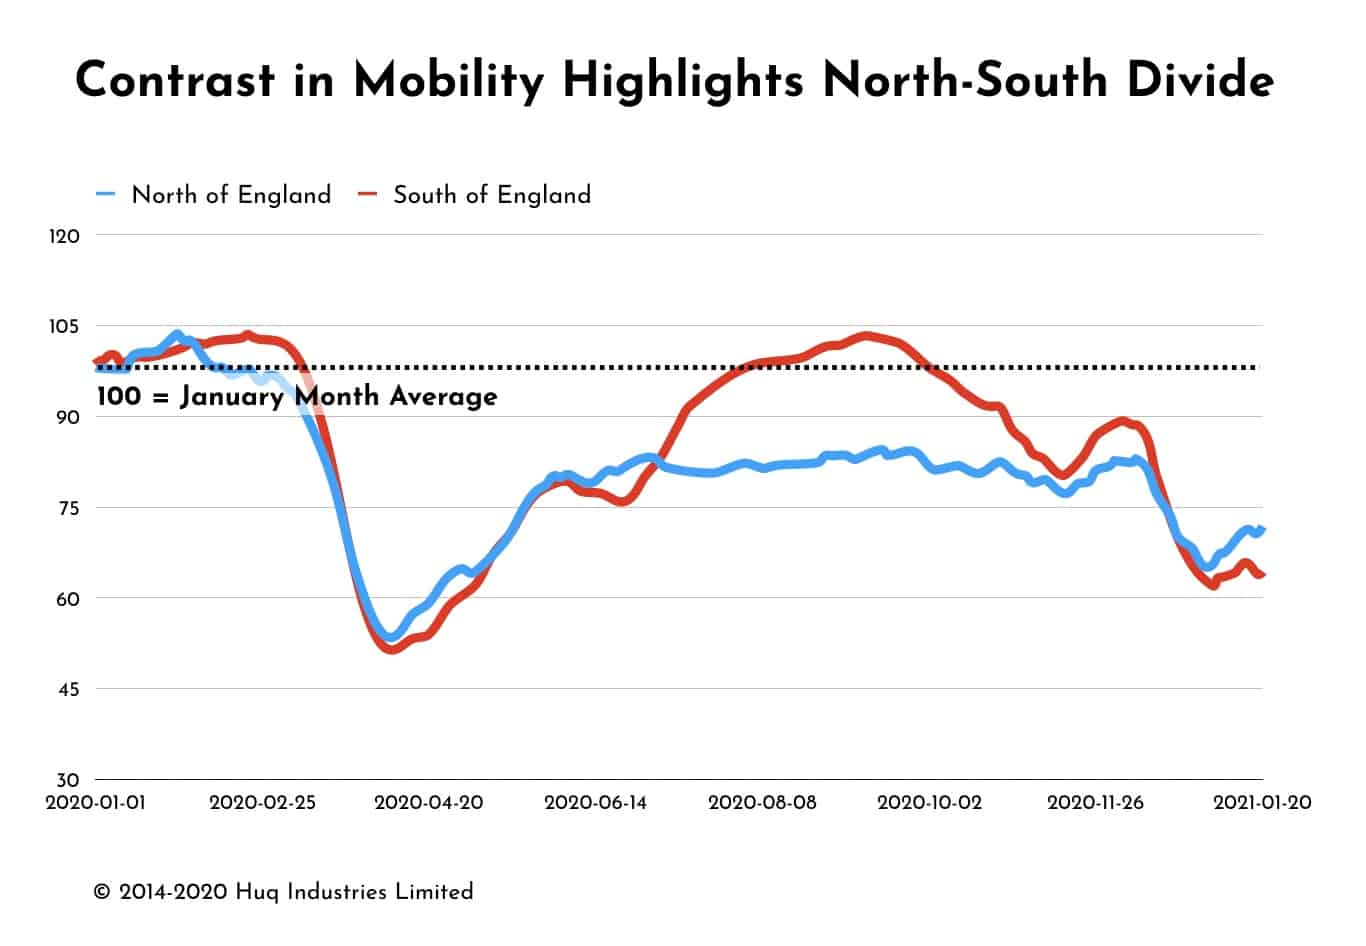 Mobility Data Highlights North-South Divide